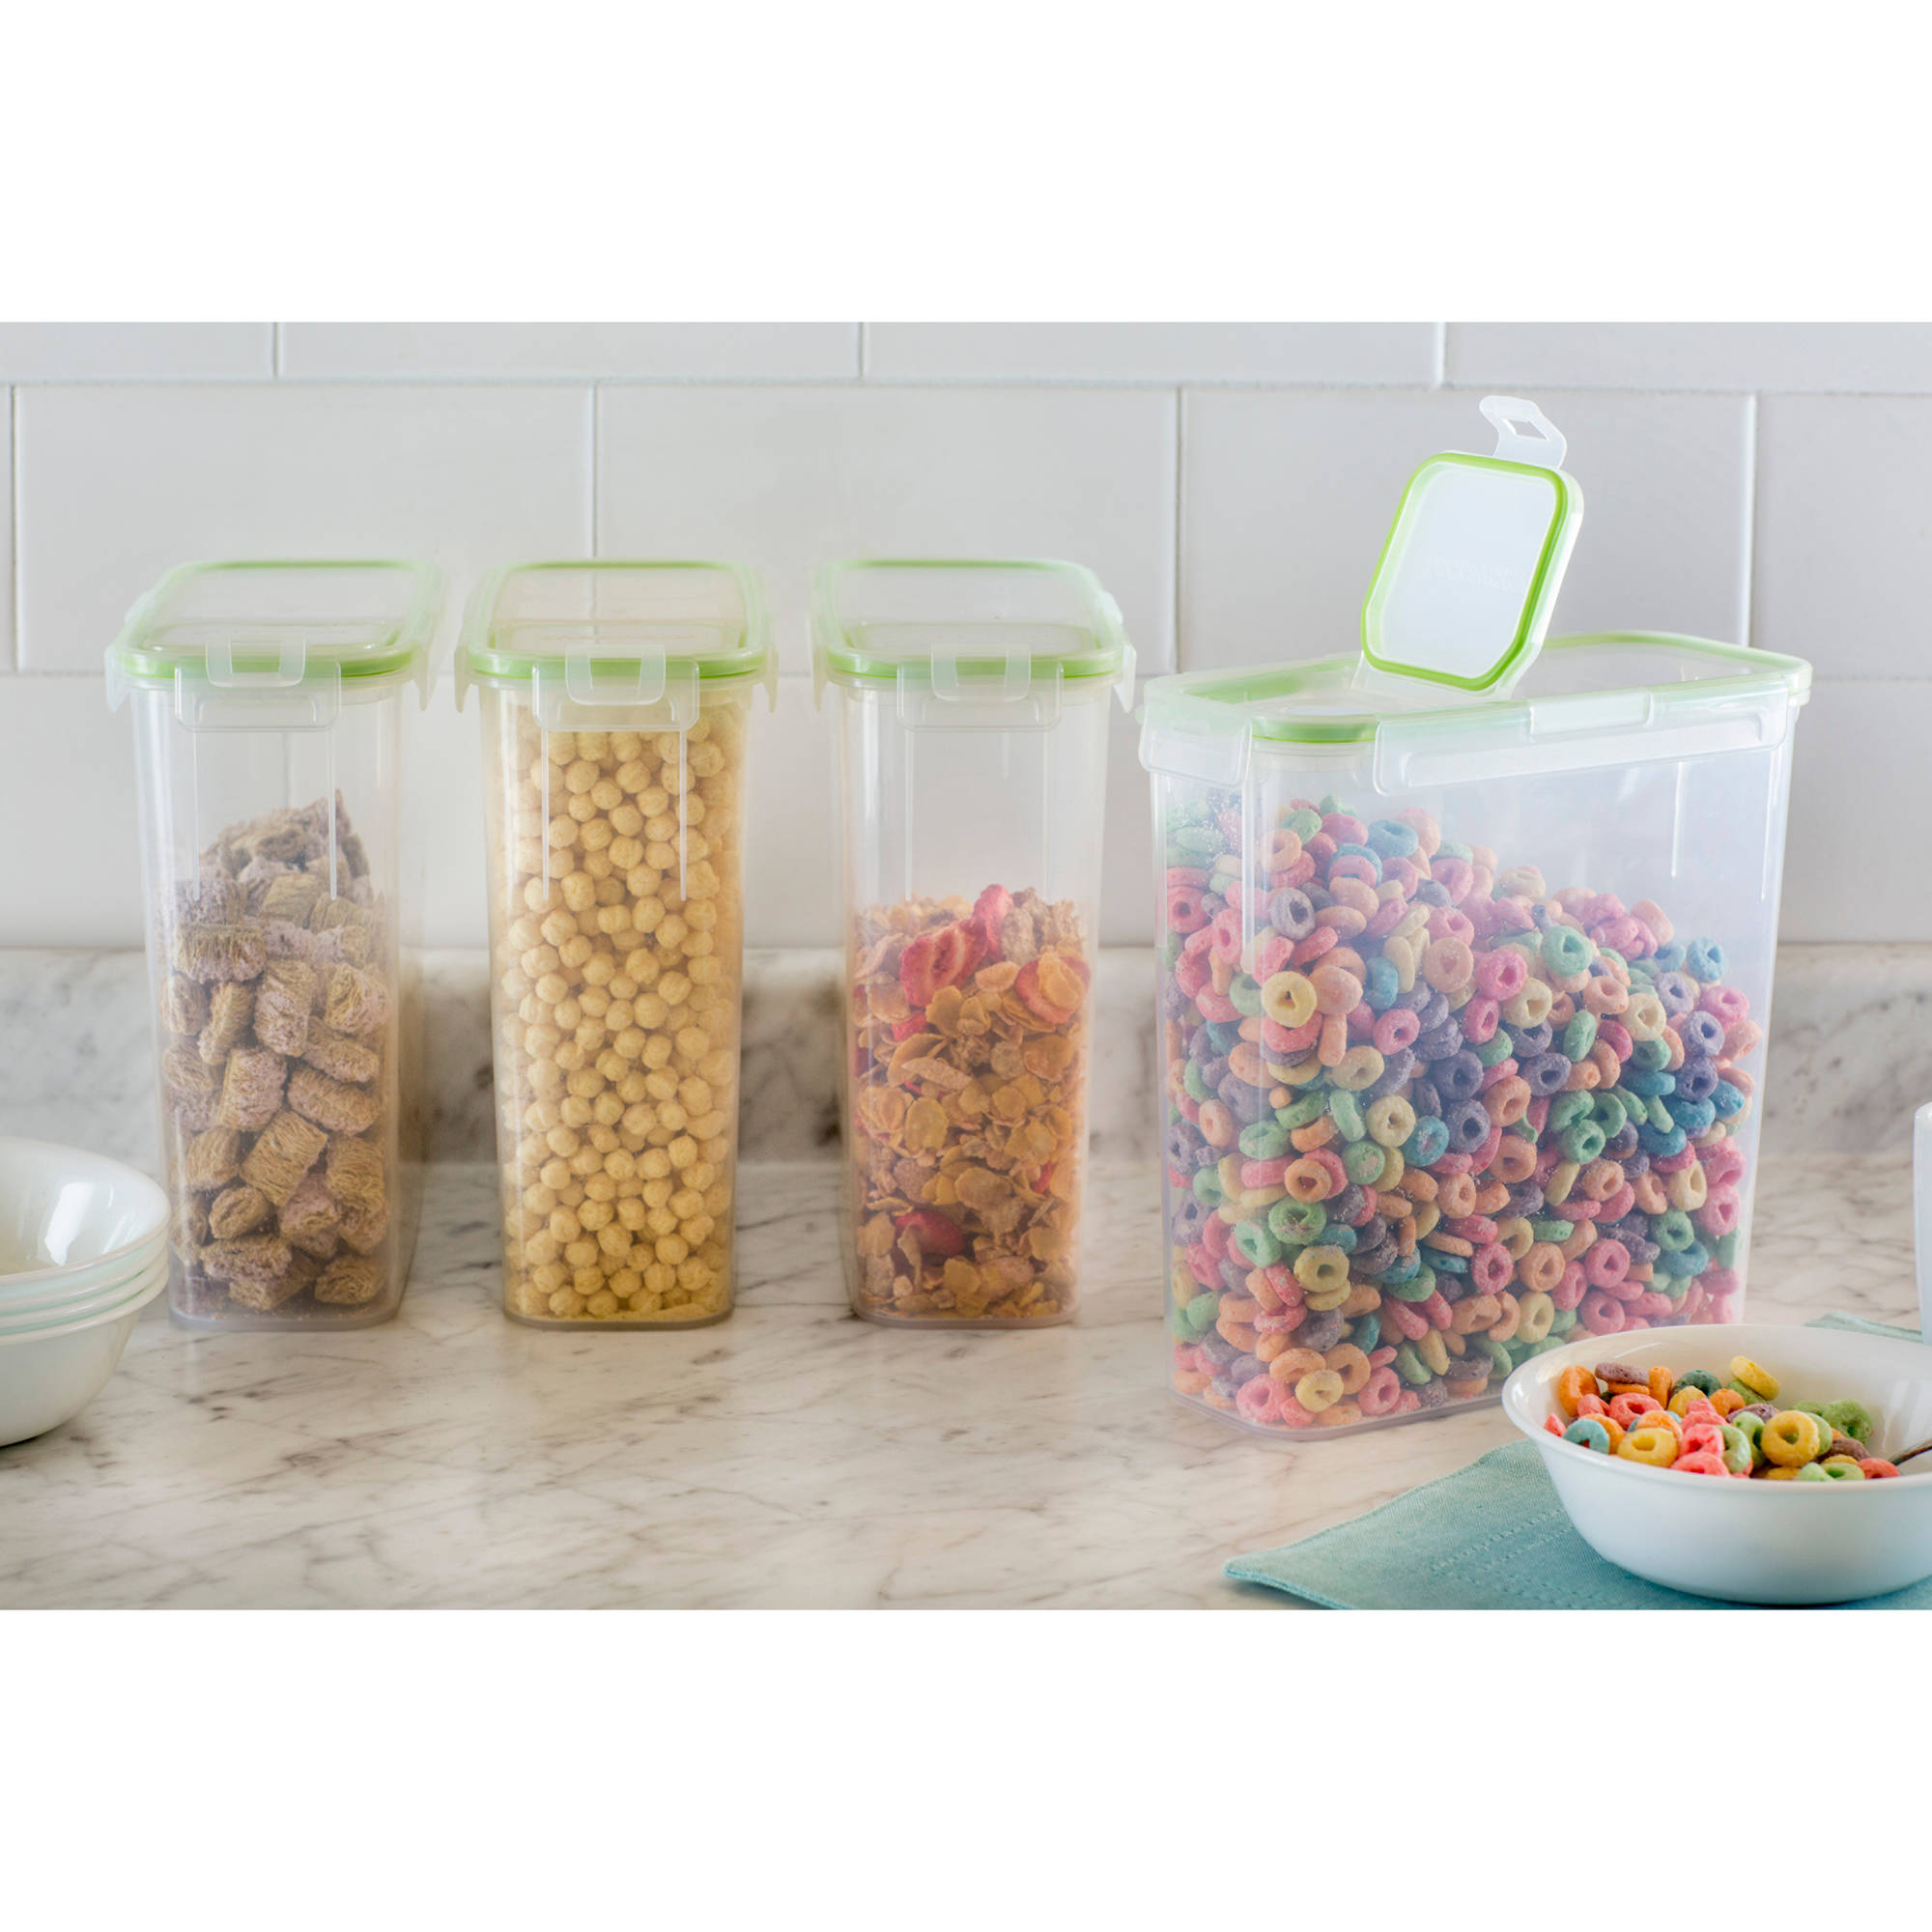 Snapware Airtight Plastic 05 Cup Nesting Food Storage Container